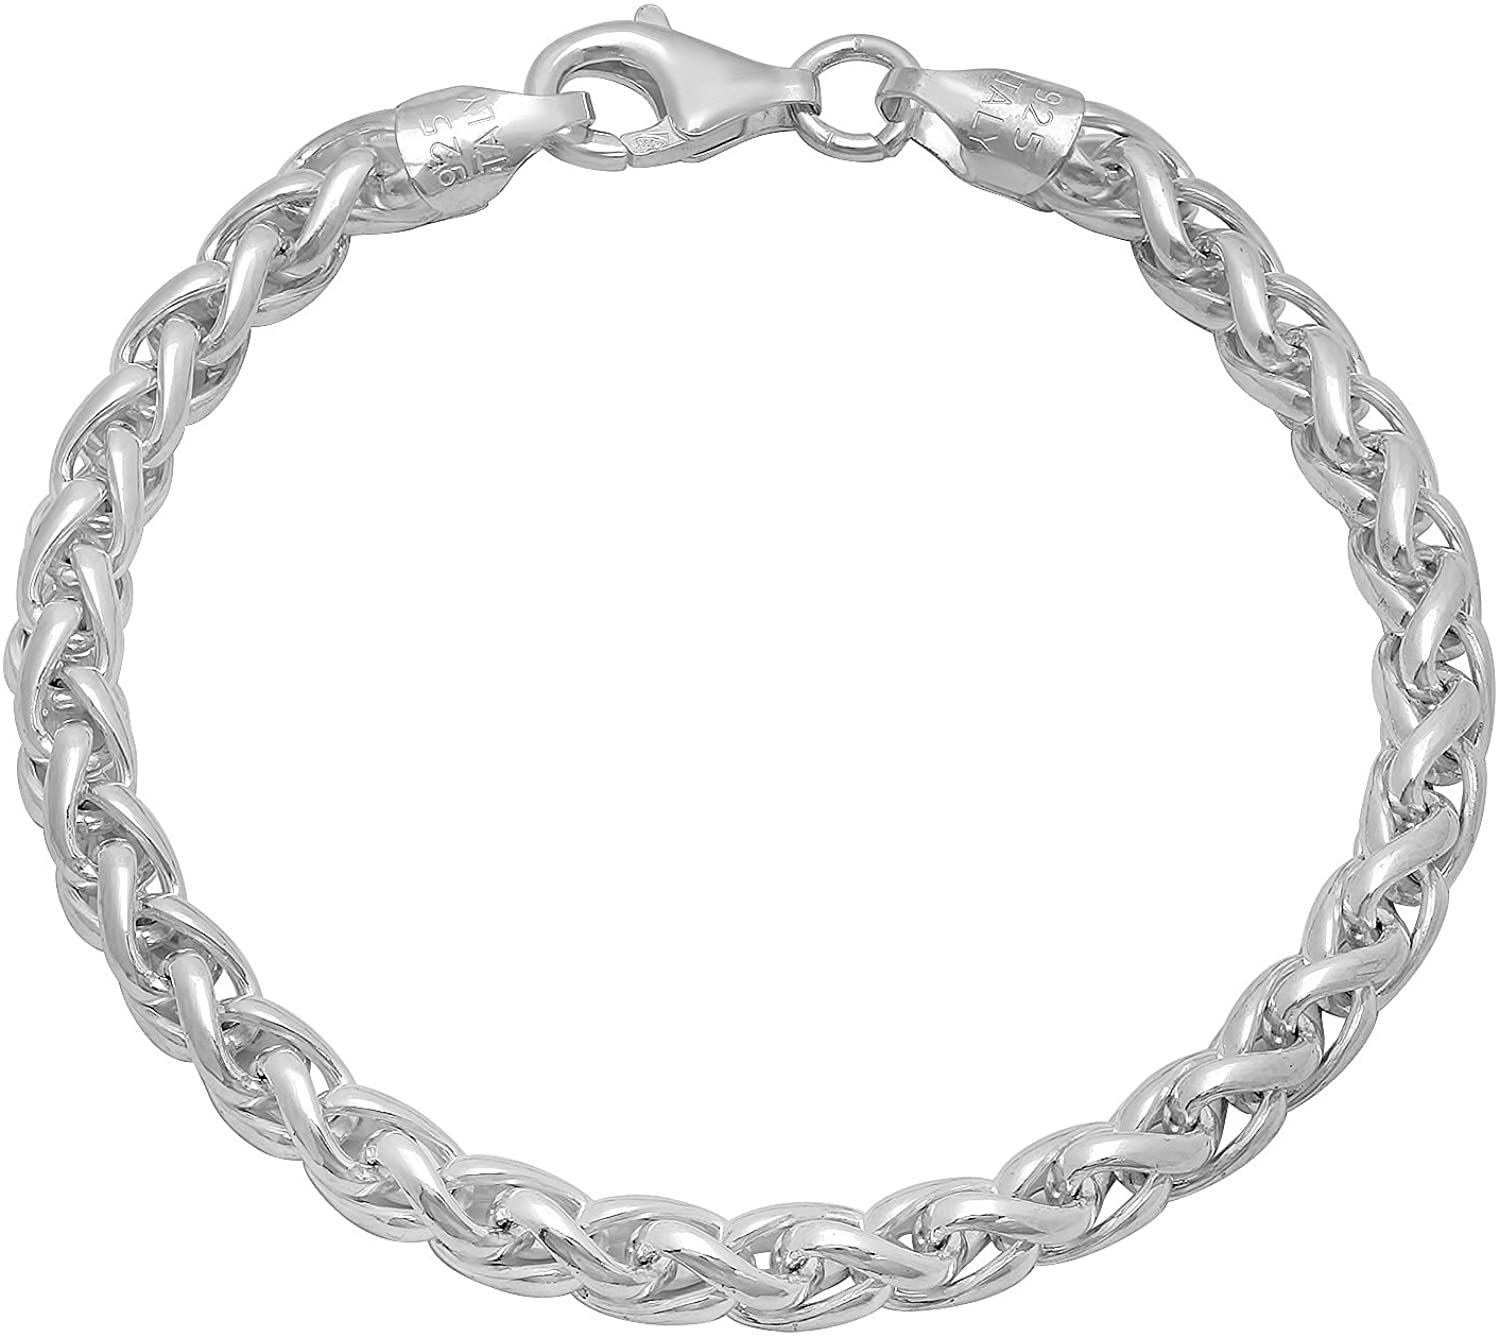 1mm-5mm High-Polished .925 Sterling Silver Braided Wheat Chain Necklace or Bracelet, 7'-30